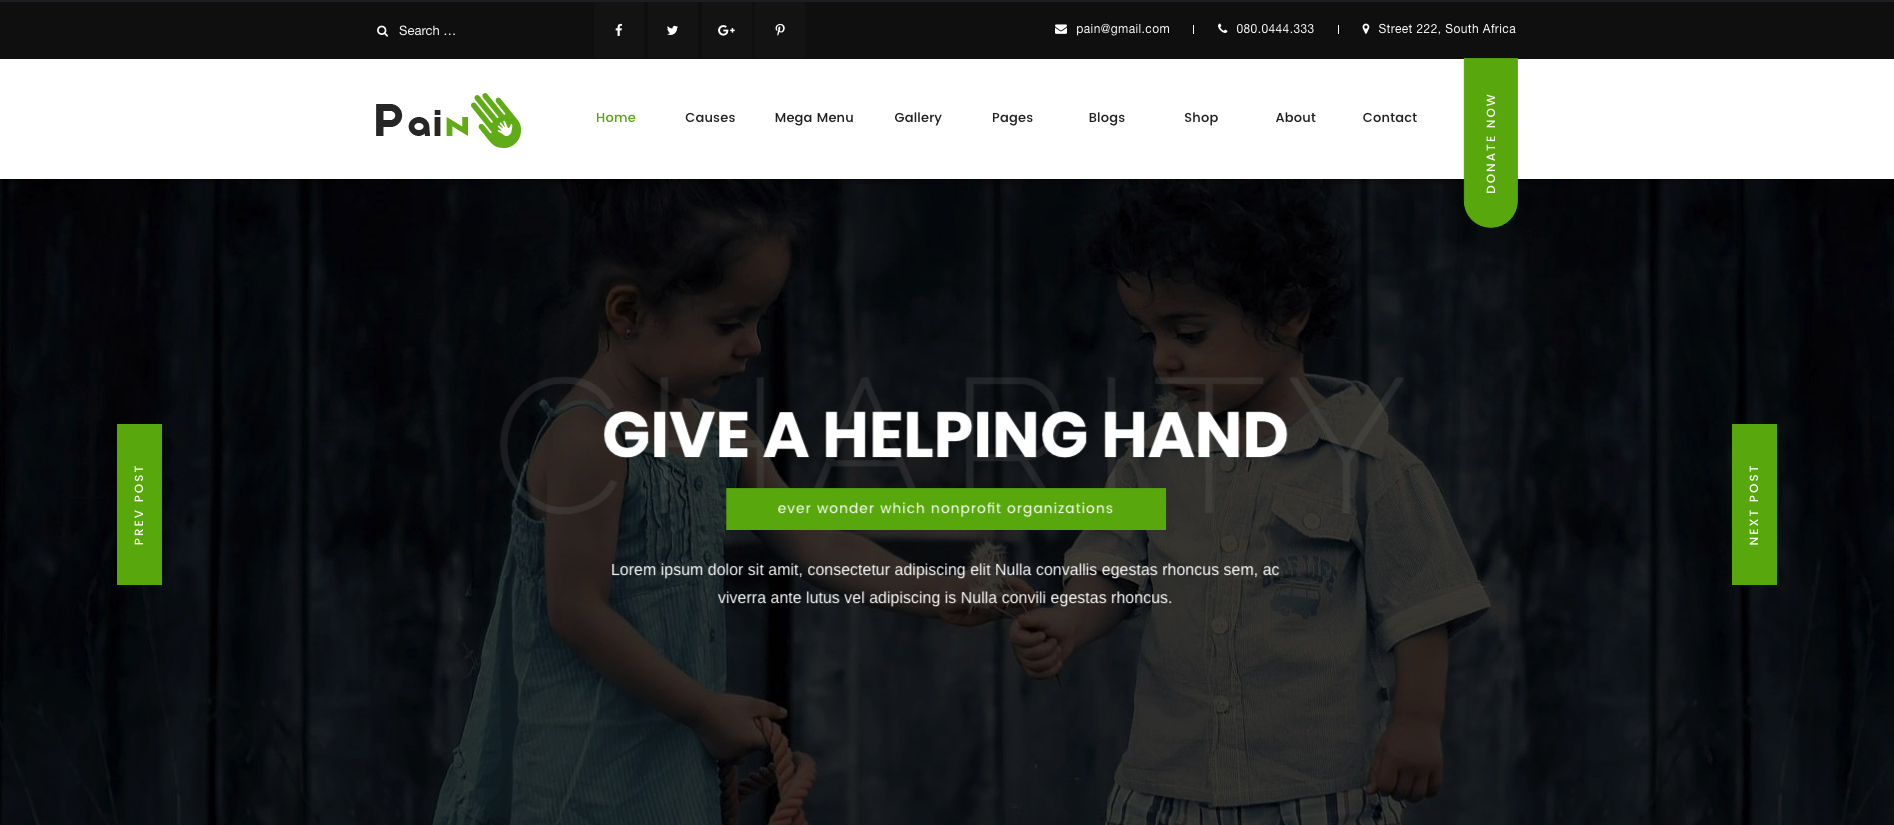 Pain – Charity & Fundraise Non-profit WordPress Theme